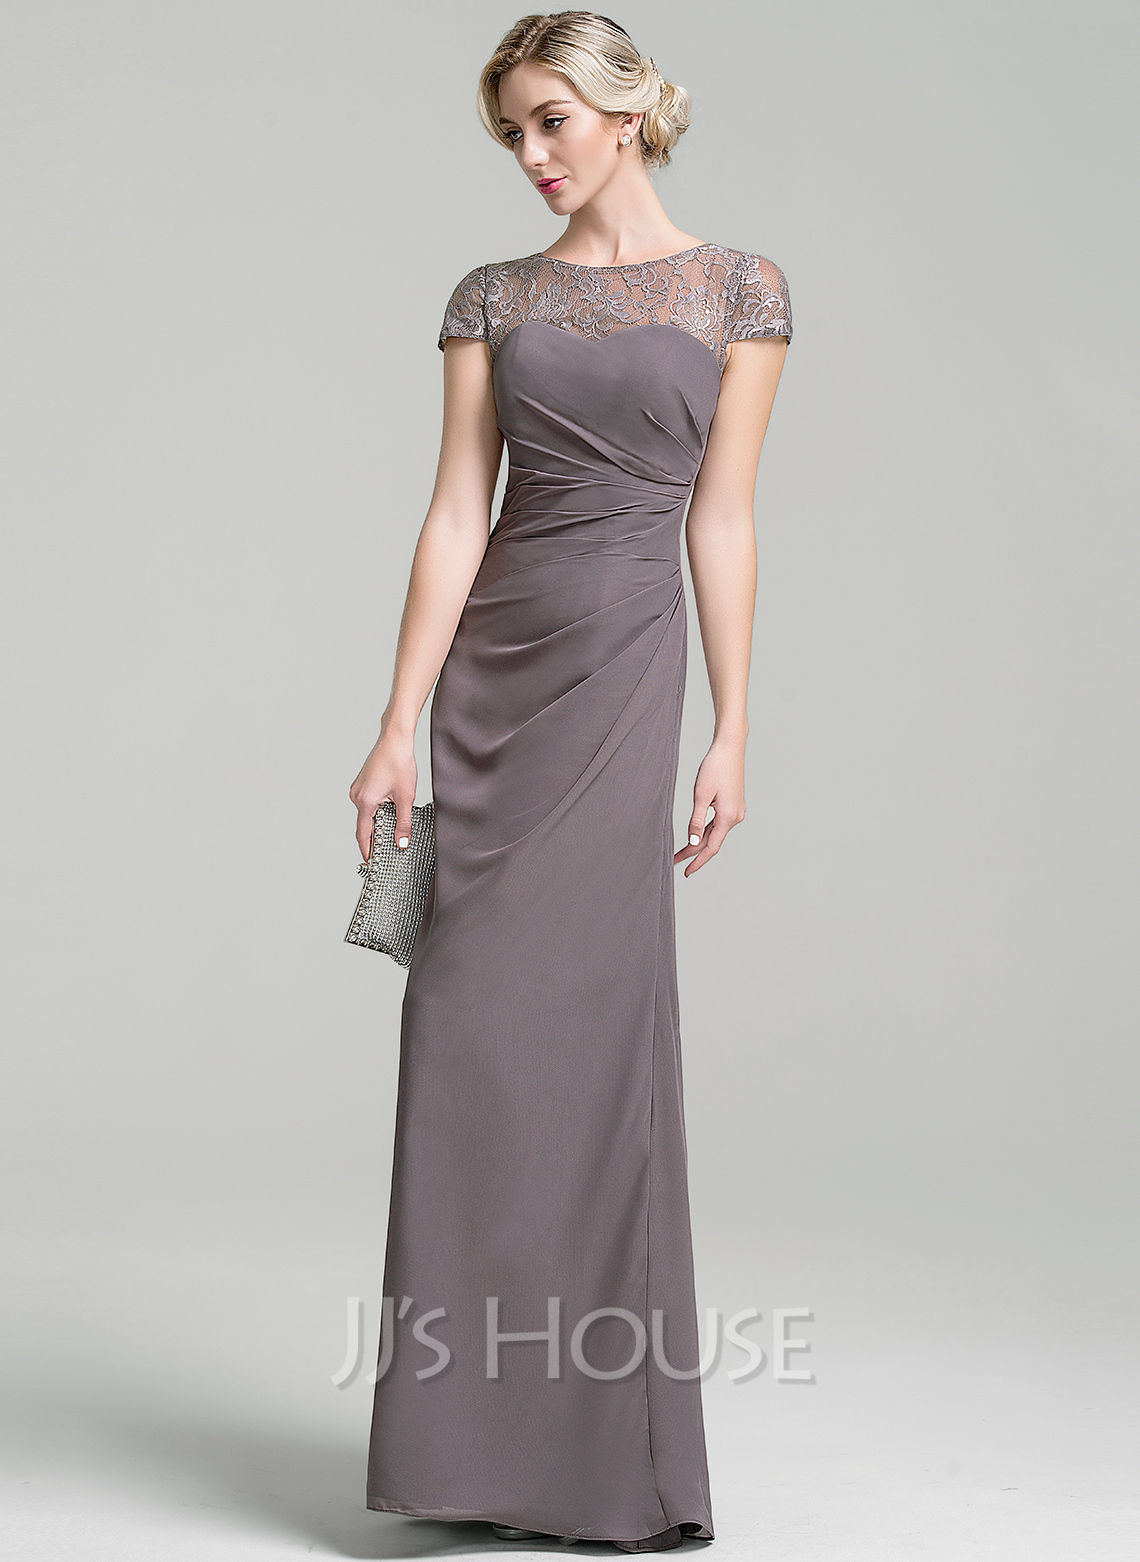 Sheath/Column Scoop Neck Floor-Length Chiffon Mother of the Bride Dress With Ruffle